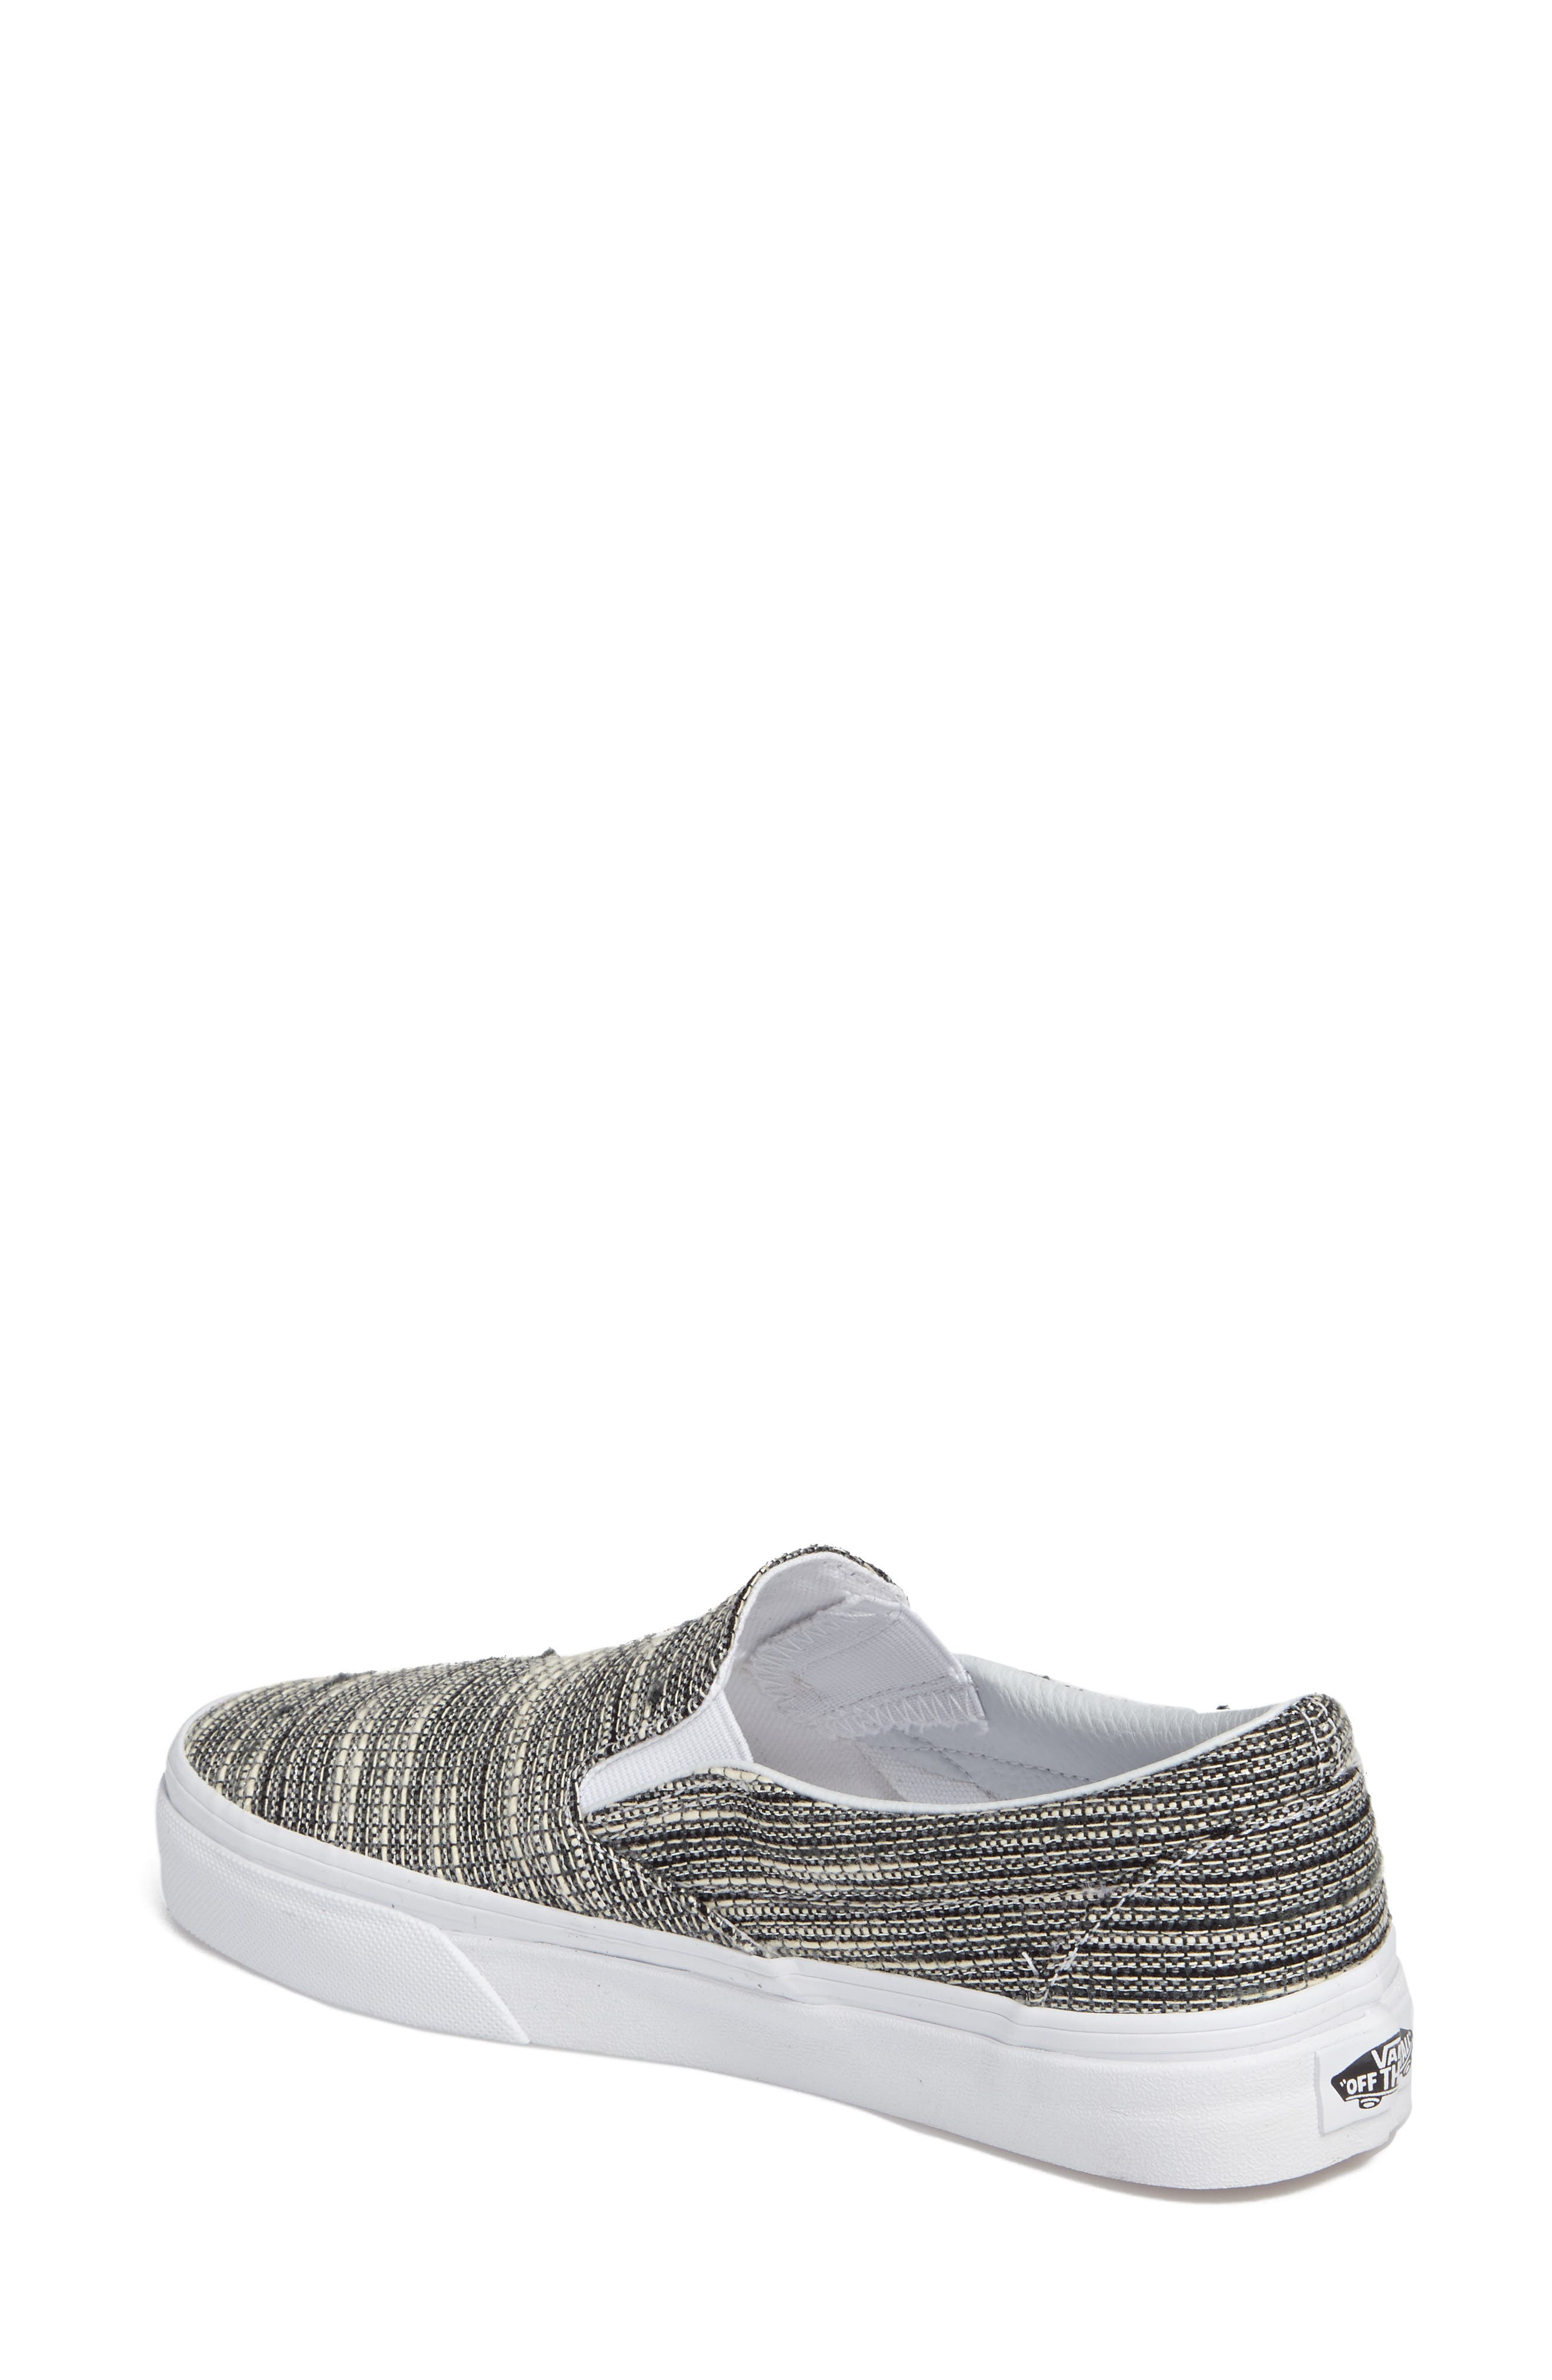 Classic Slip-On Sneaker,                             Alternate thumbnail 141, color,